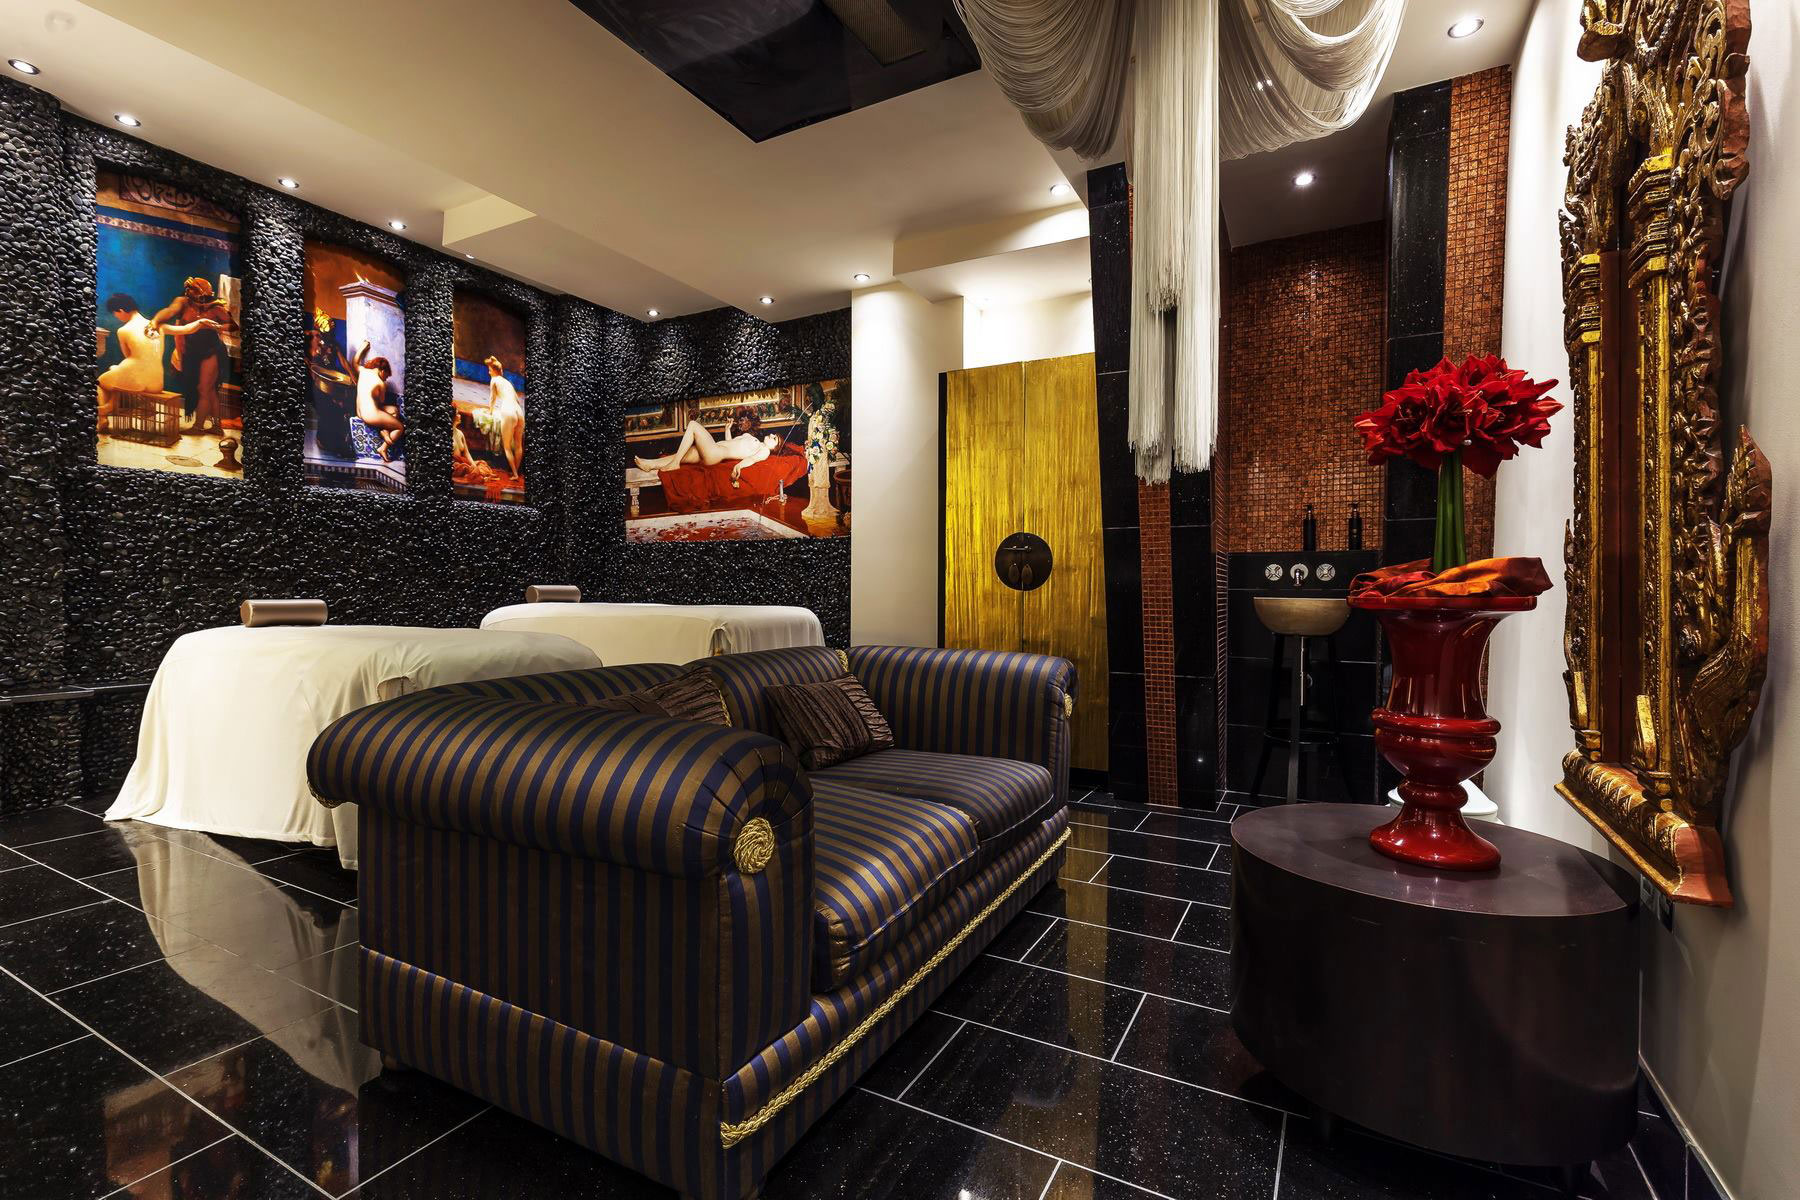 London's Thai Square Spa Gears Up For Valentines Day